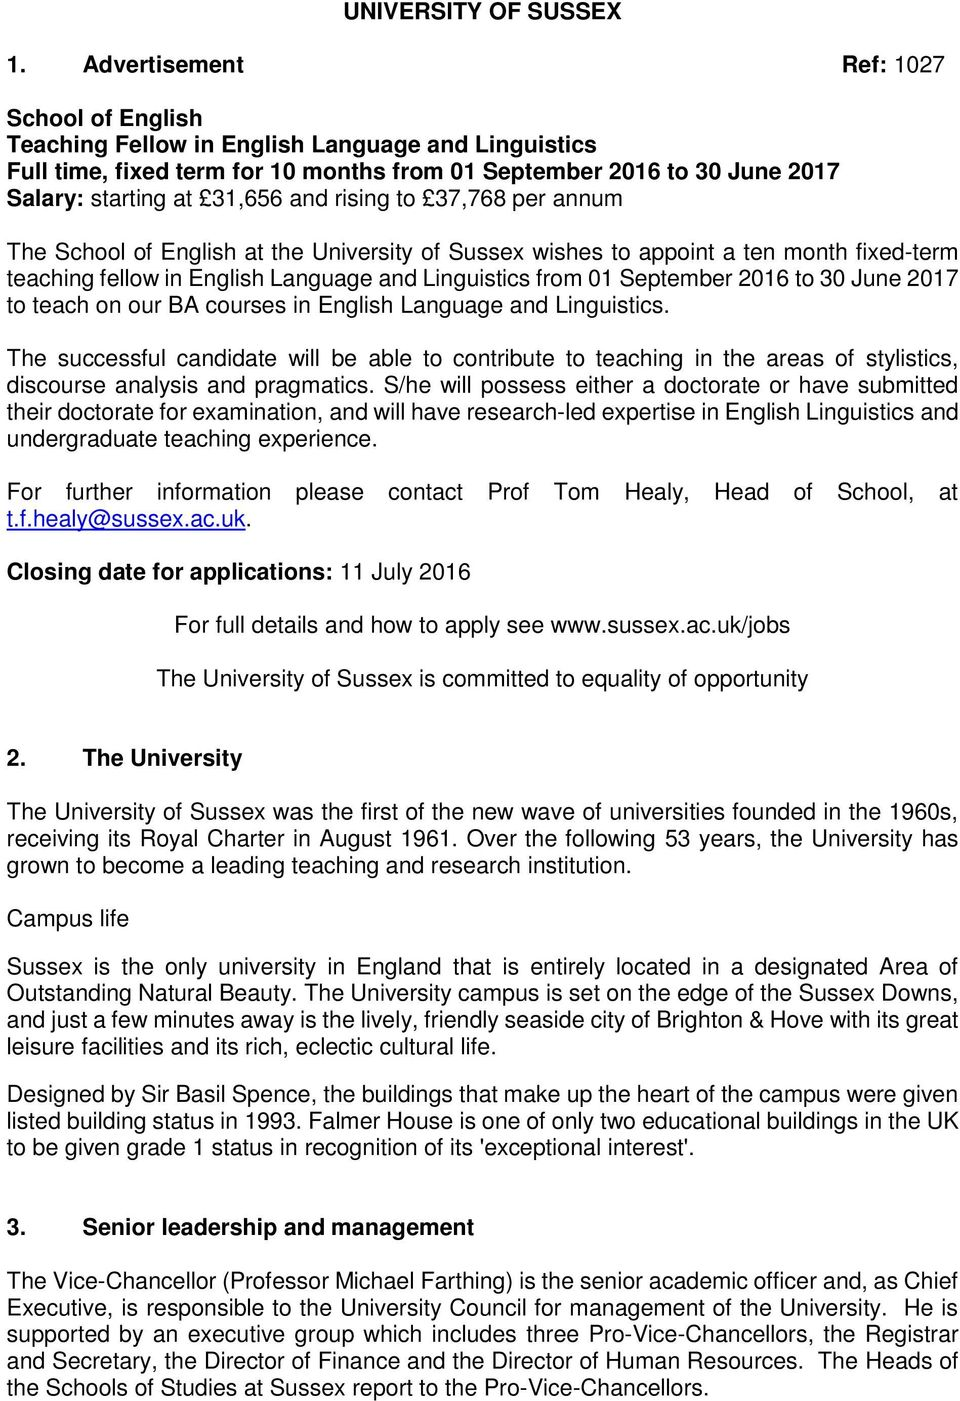 rising to 37,768 per annum The School of English at the University of Sussex wishes to appoint a ten month fixed-term teaching fellow in English Language and Linguistics from 01 September 2016 to 30